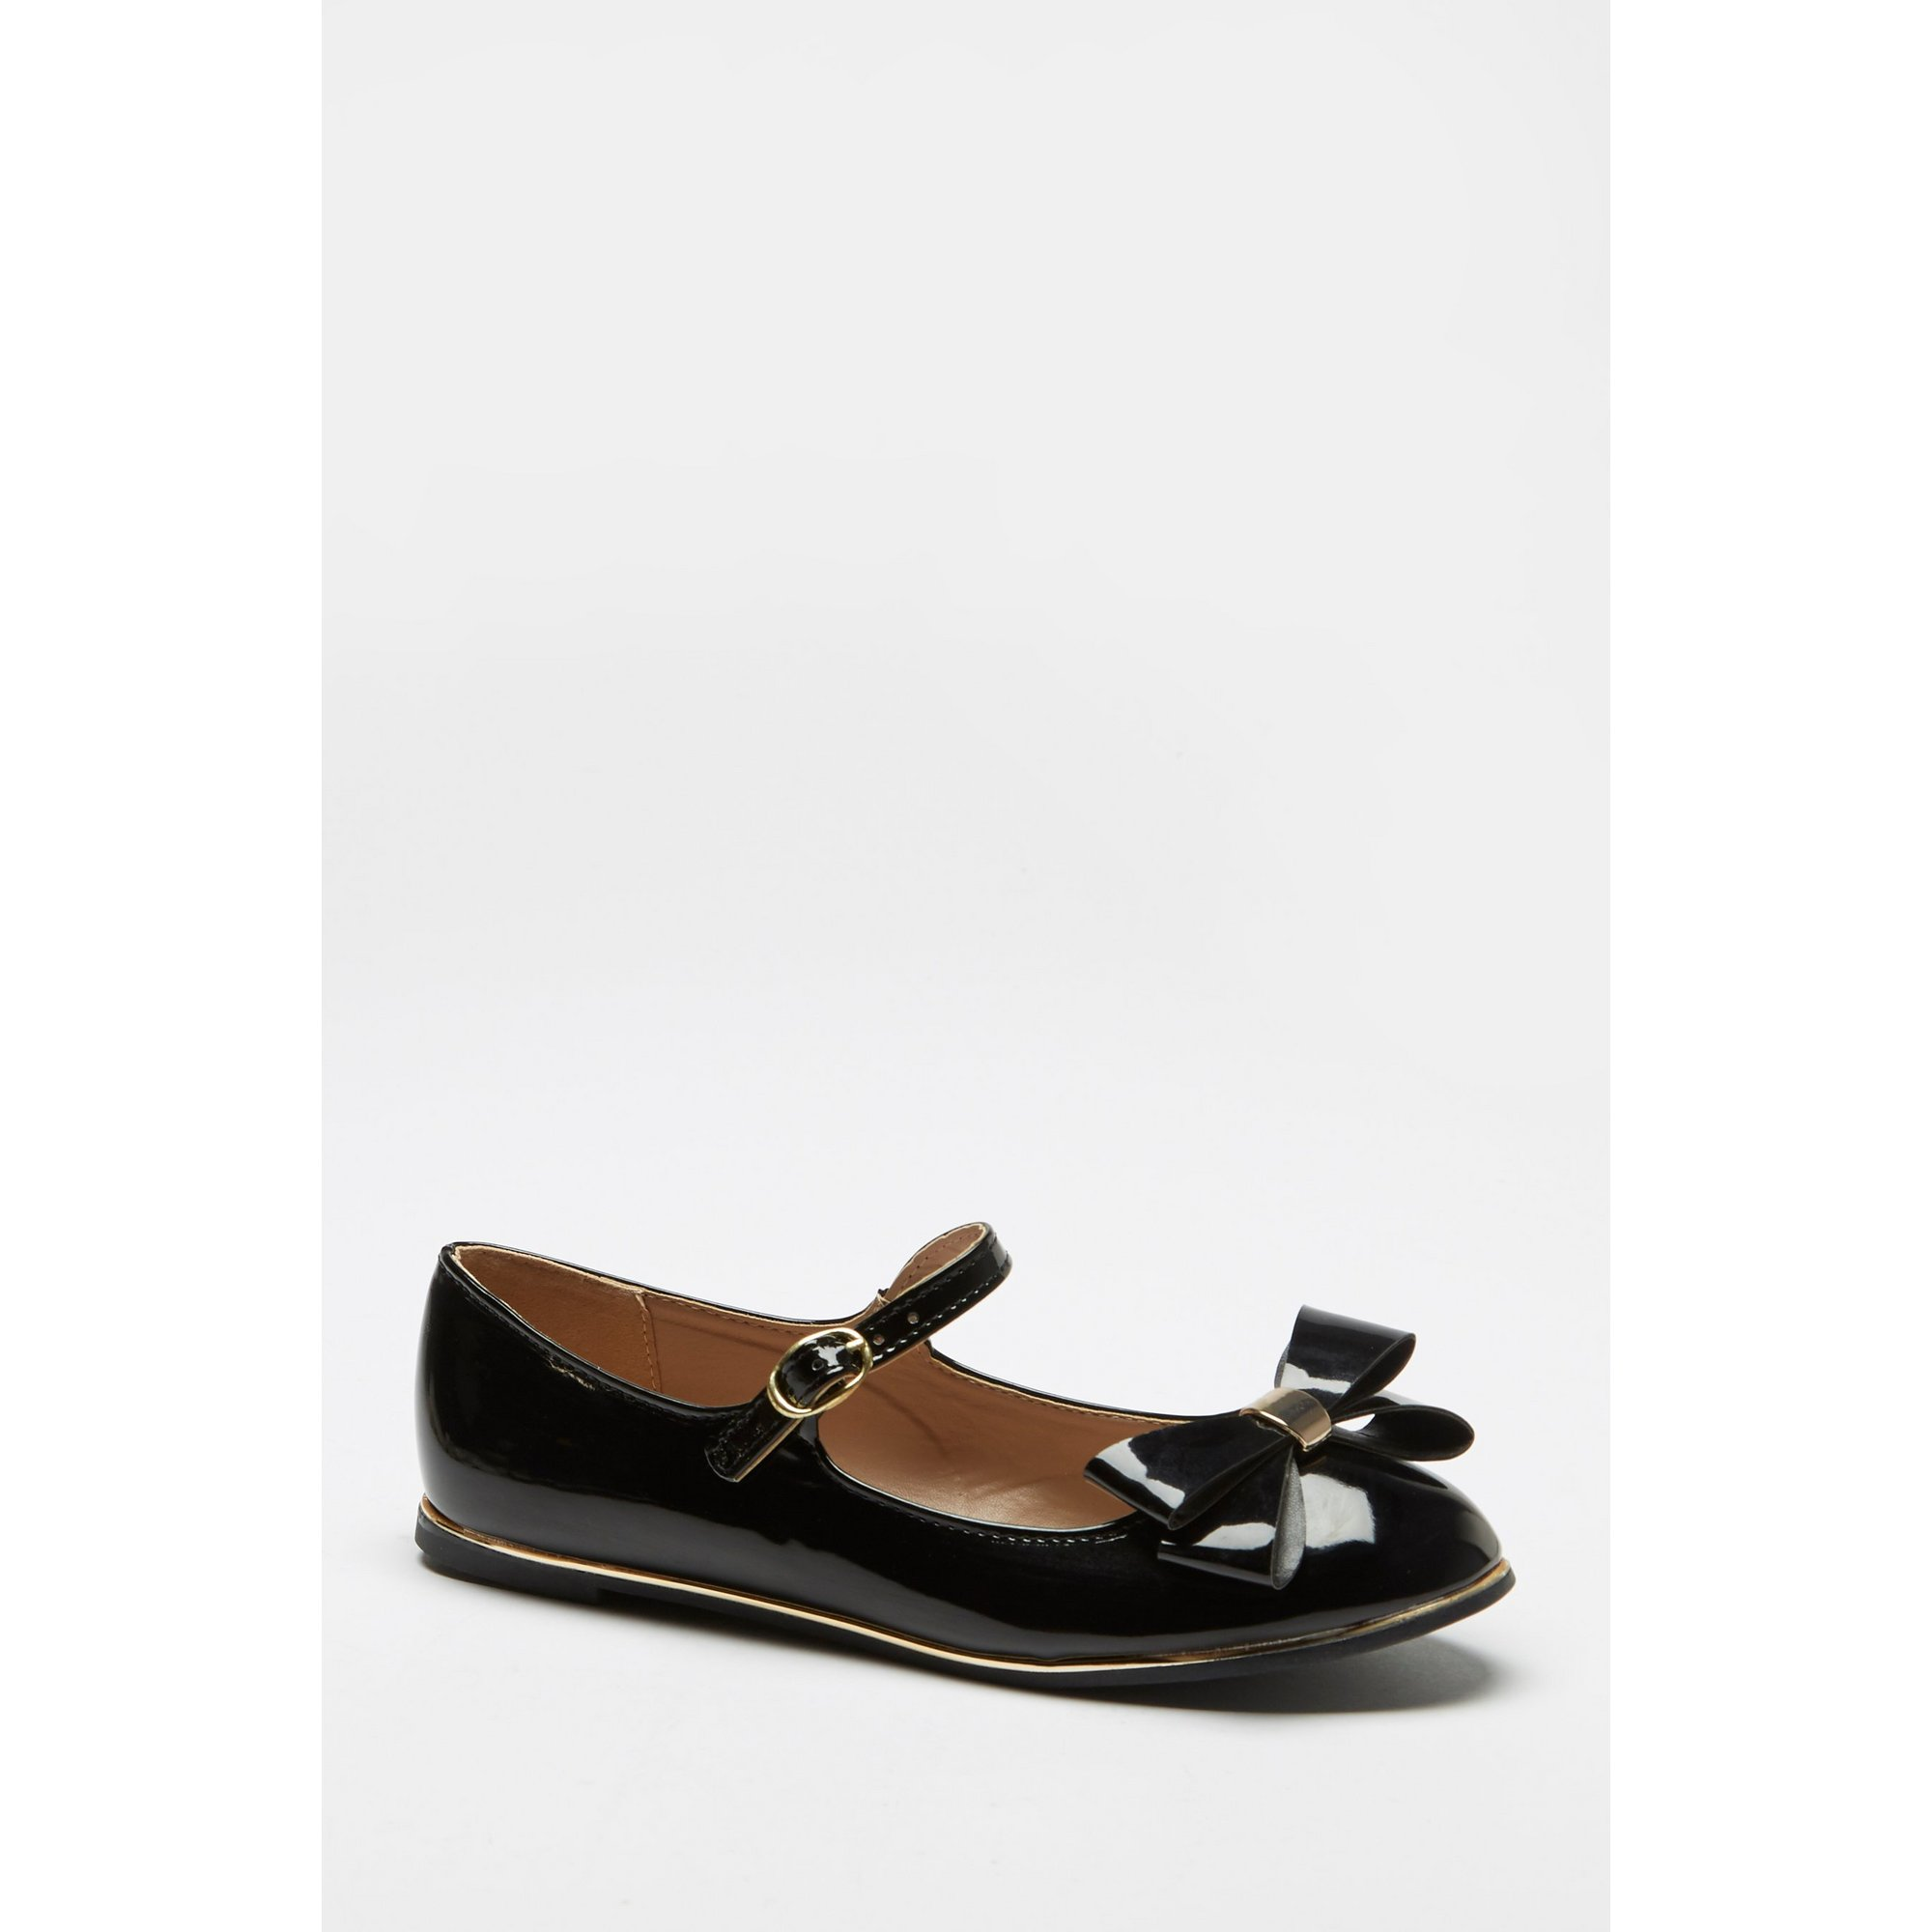 Image of Girls Flat Mary Jane Bow Front Shoes